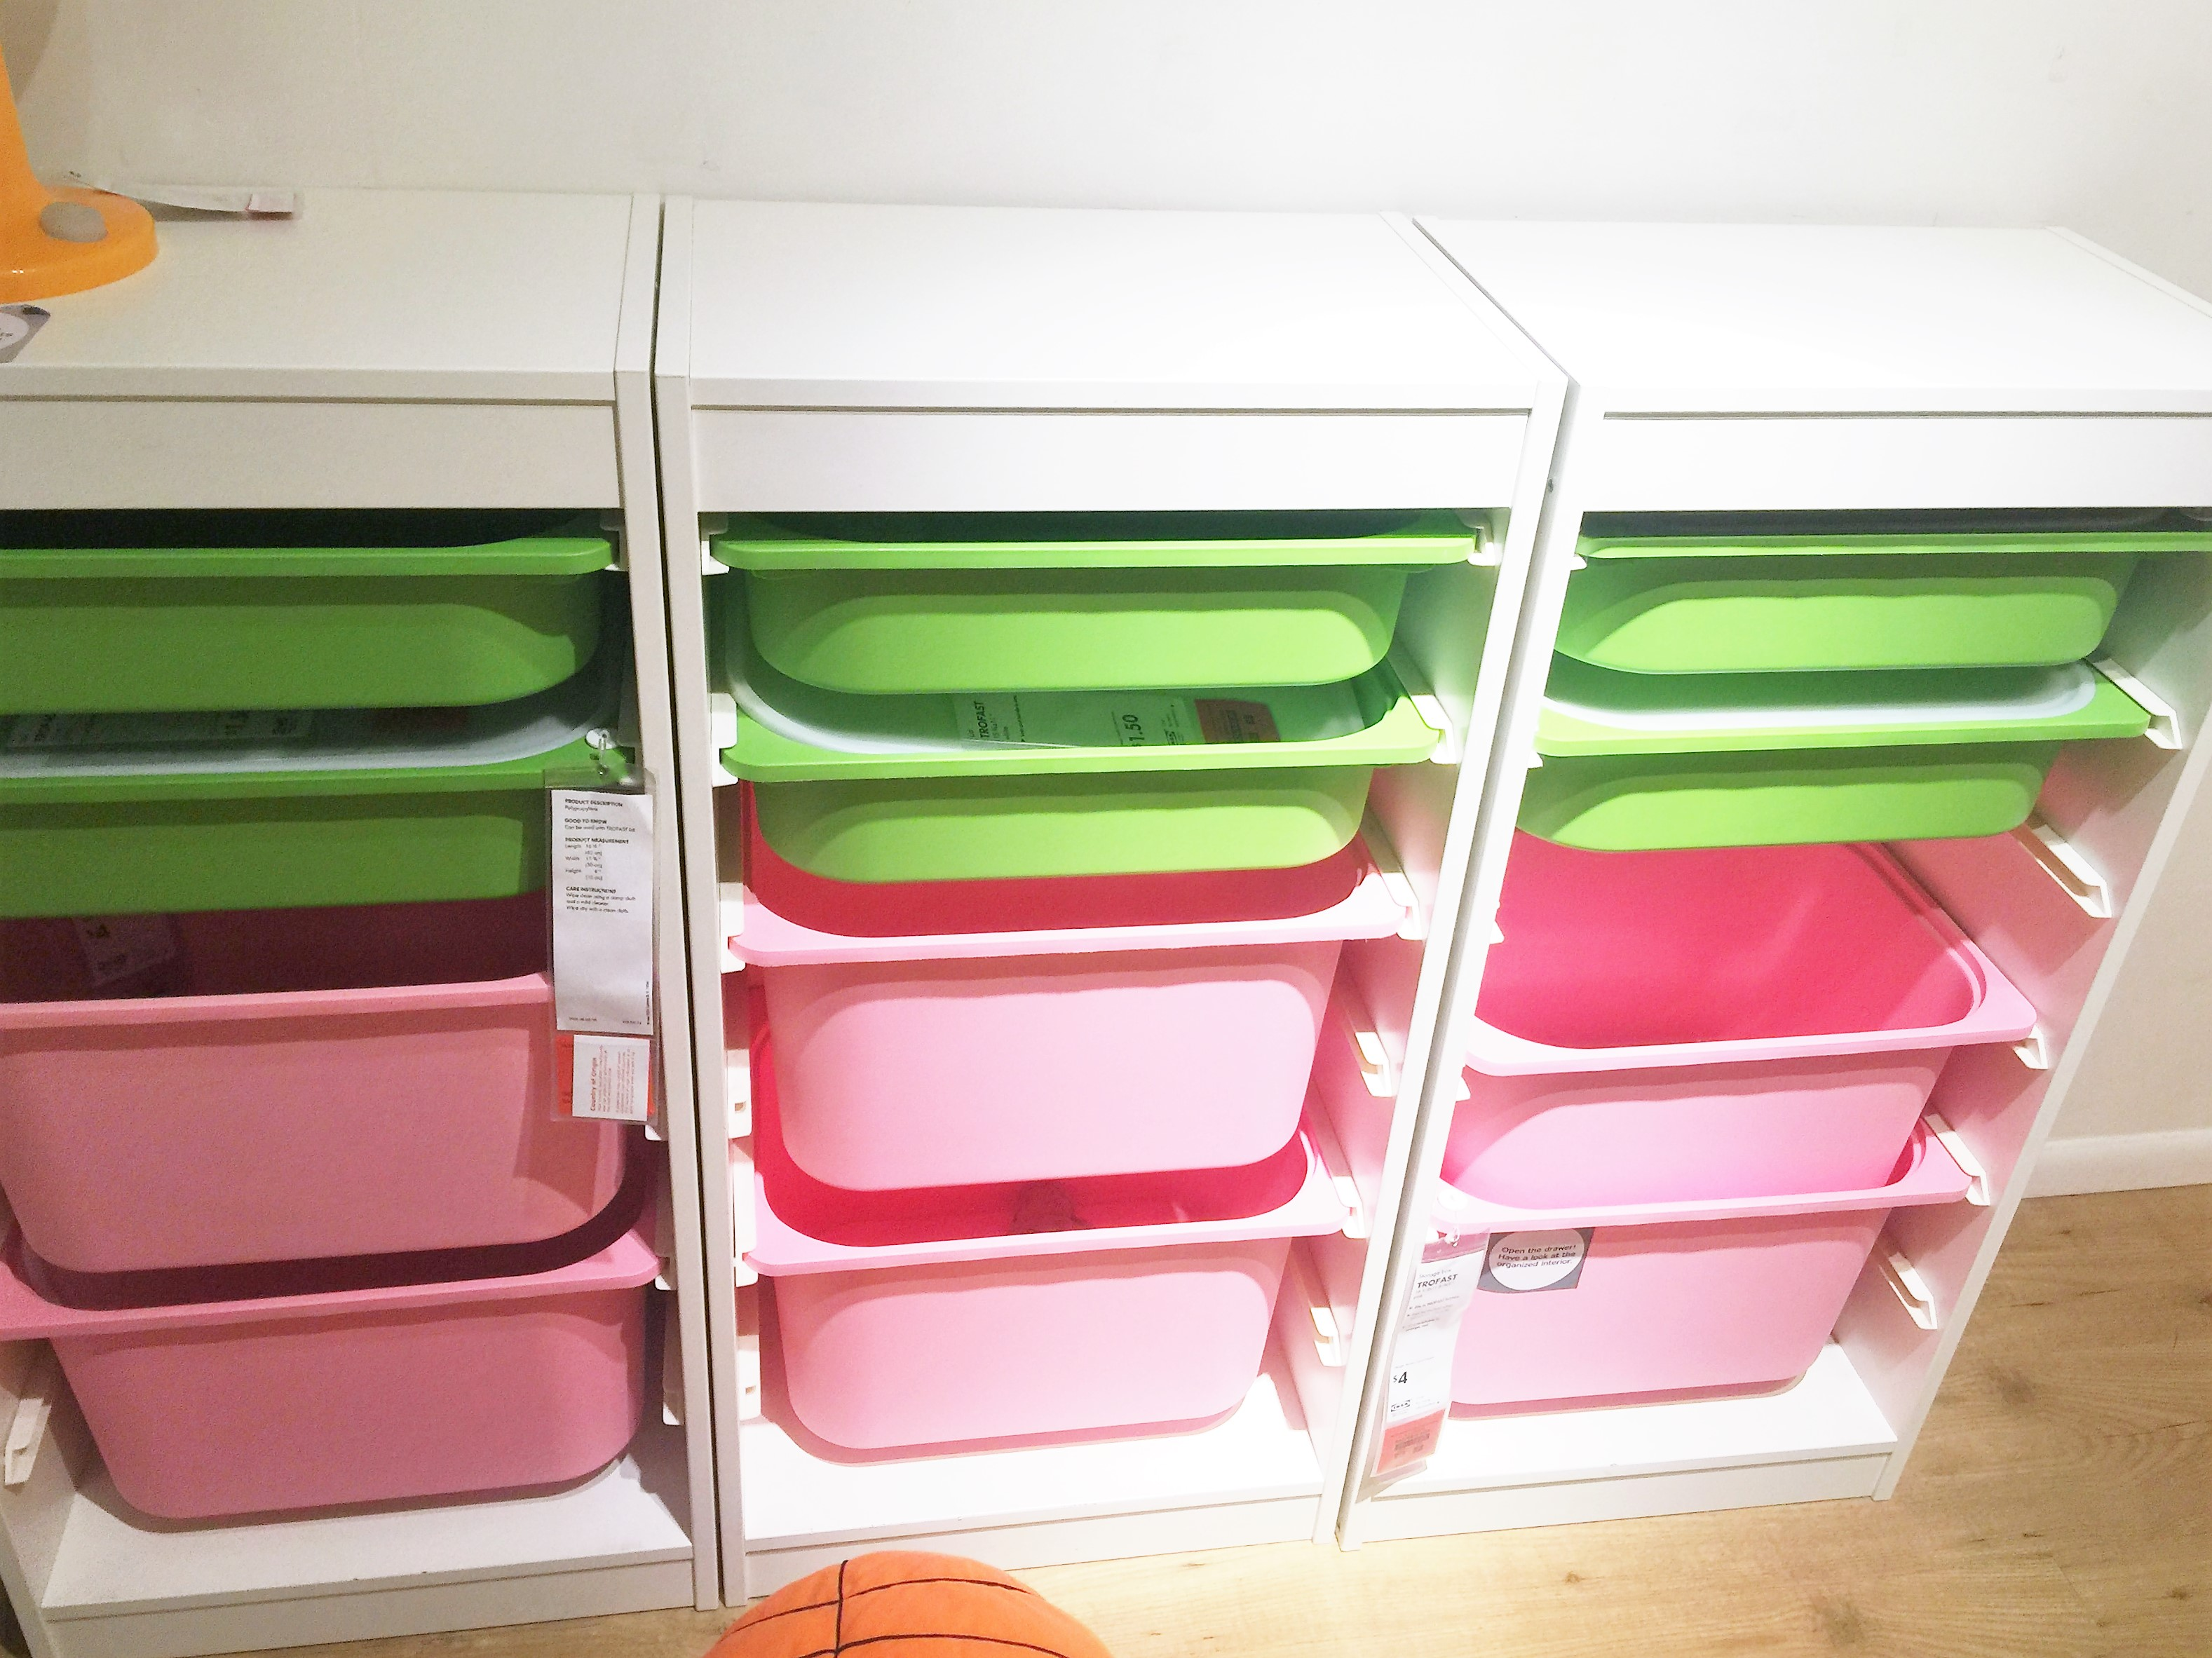 classroom organizer chair covers tub chairs with casters 10 must haves from ikea scholastic 9 avskild 4 99 pack